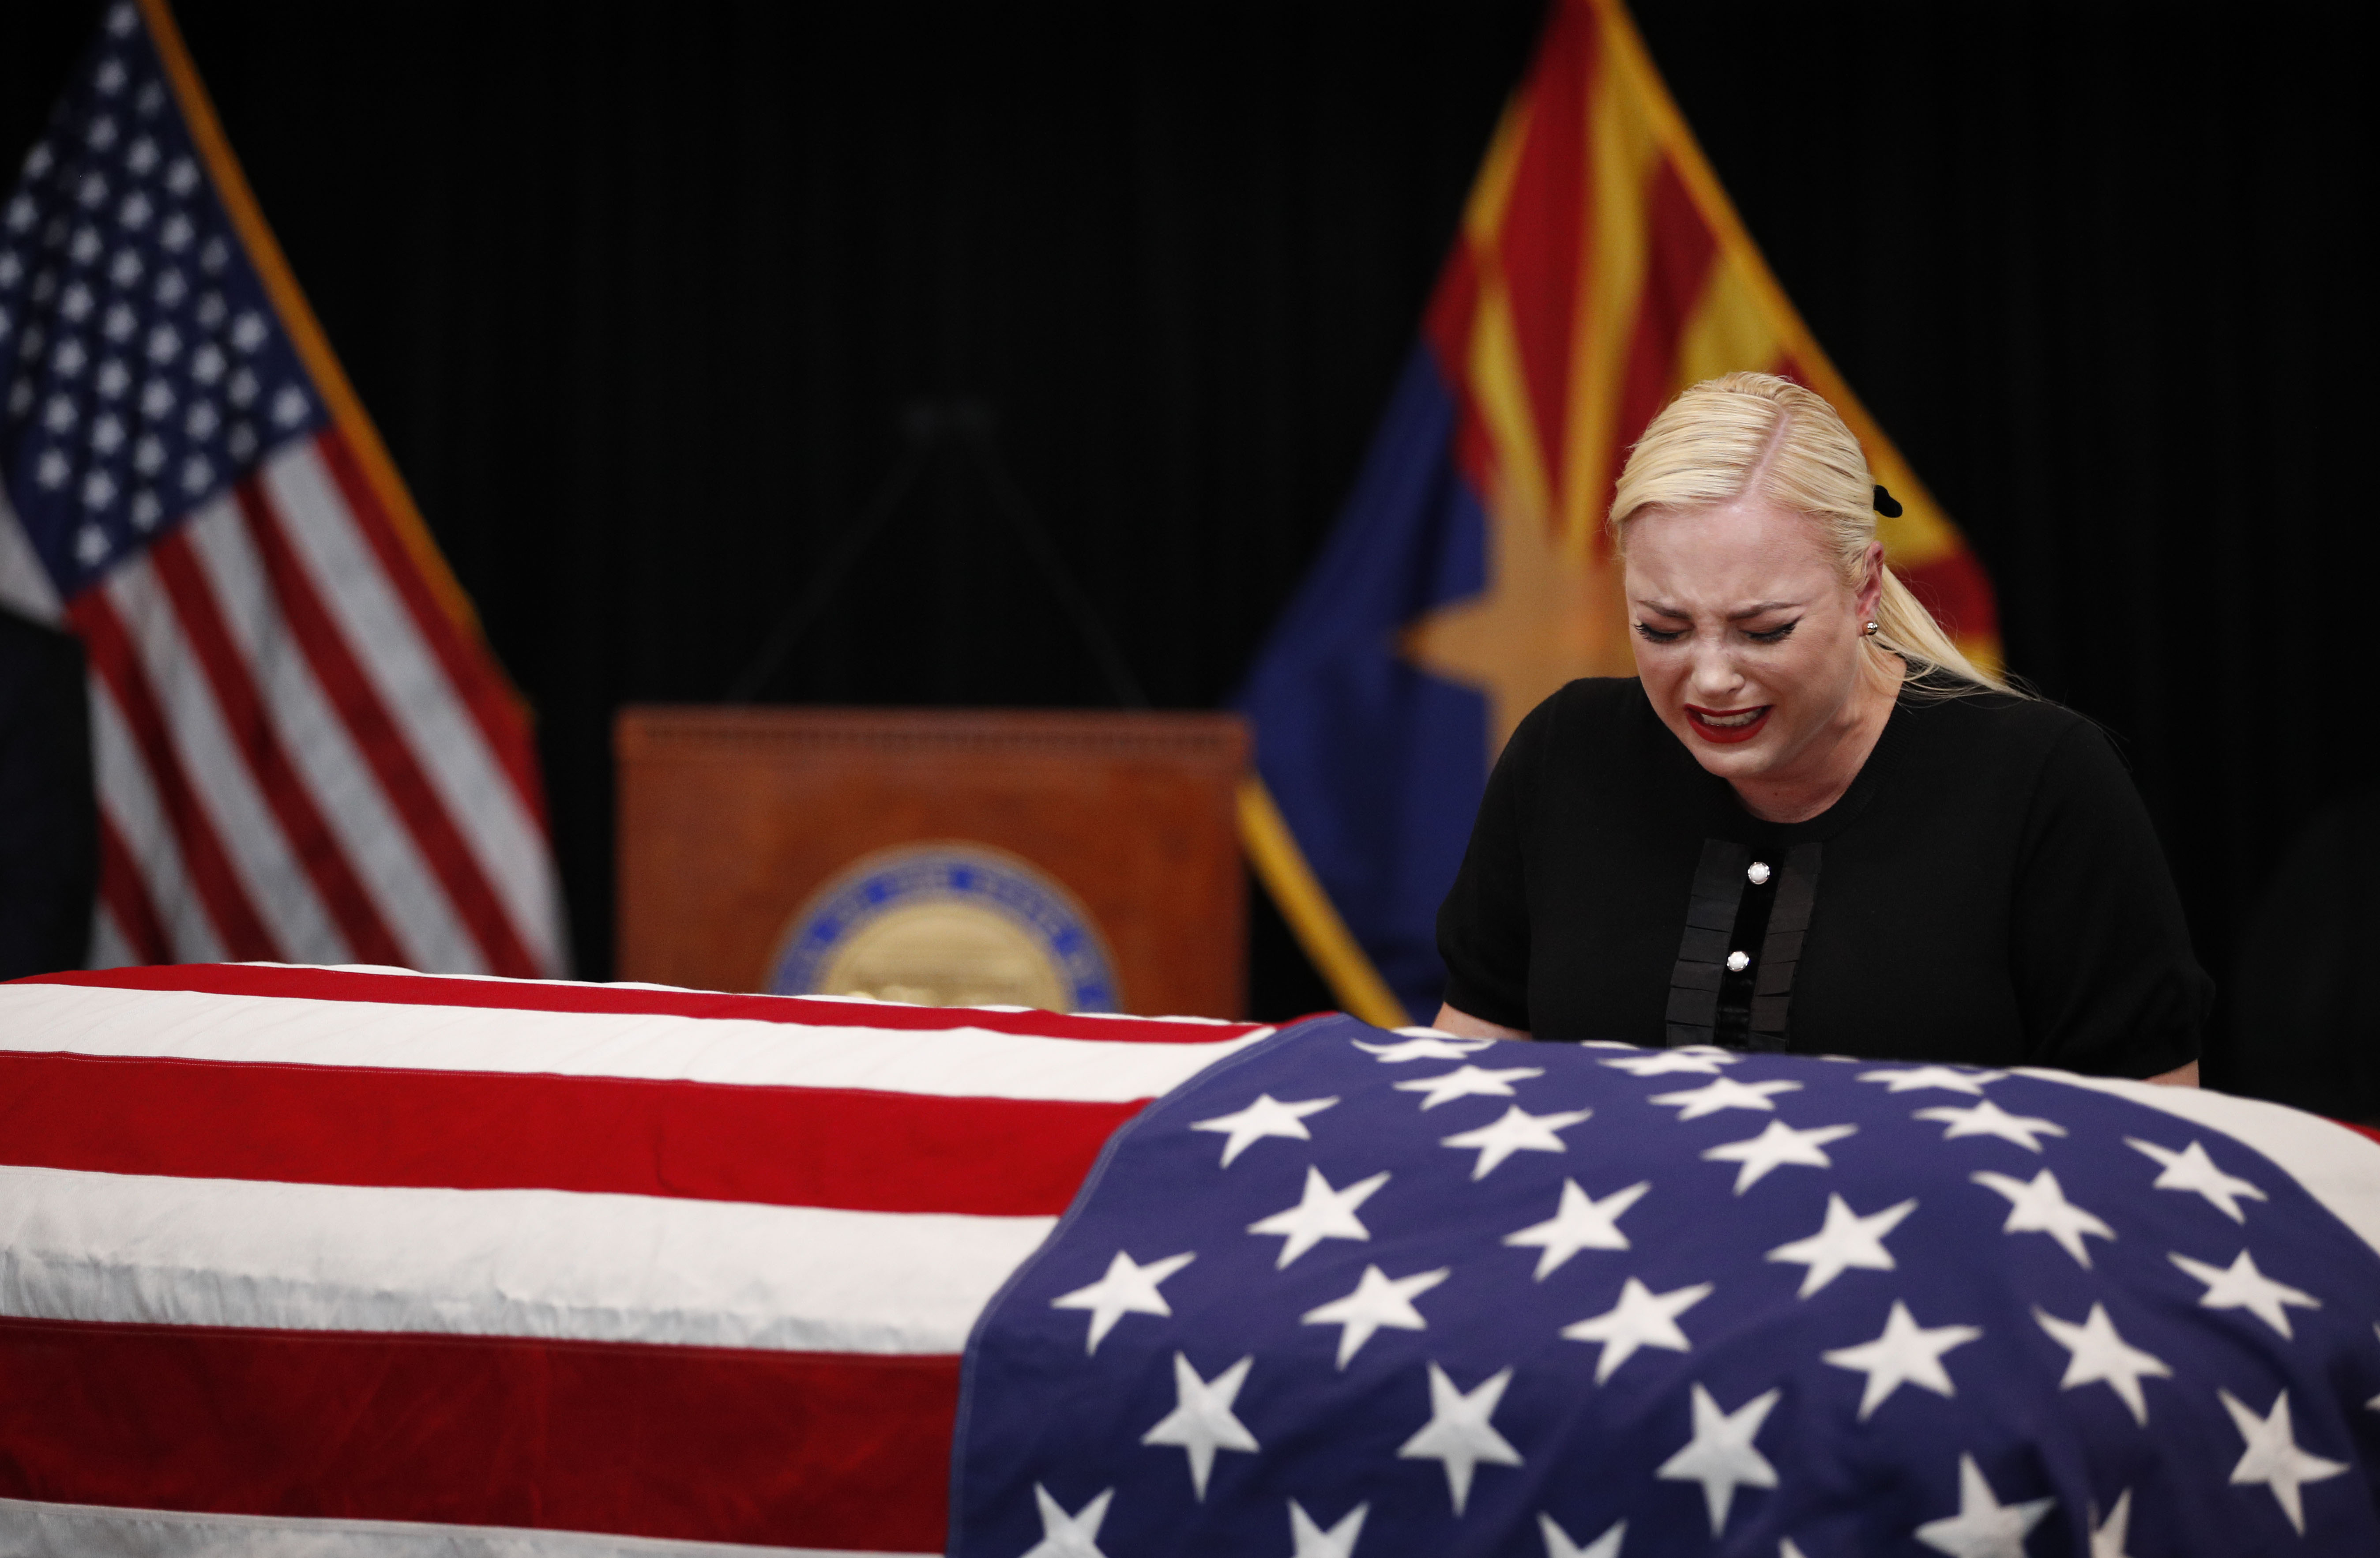 Meghan McCain, daughter of Sen. John McCain, touches the casket during a memorial service at the Arizona Capitol on August 29, 2018, in Phoenix, Arizona. John McCain will lie in state at the Arizona State Capitol before being transported to Washington D.C. where he will be buried at the U.S. Naval Academy Cemetery in Annapolis. Sen. McCain, a decorated war hero, died August 25 at the age of 81 after a long battle with Glioblastoma, a form of brain cancer.